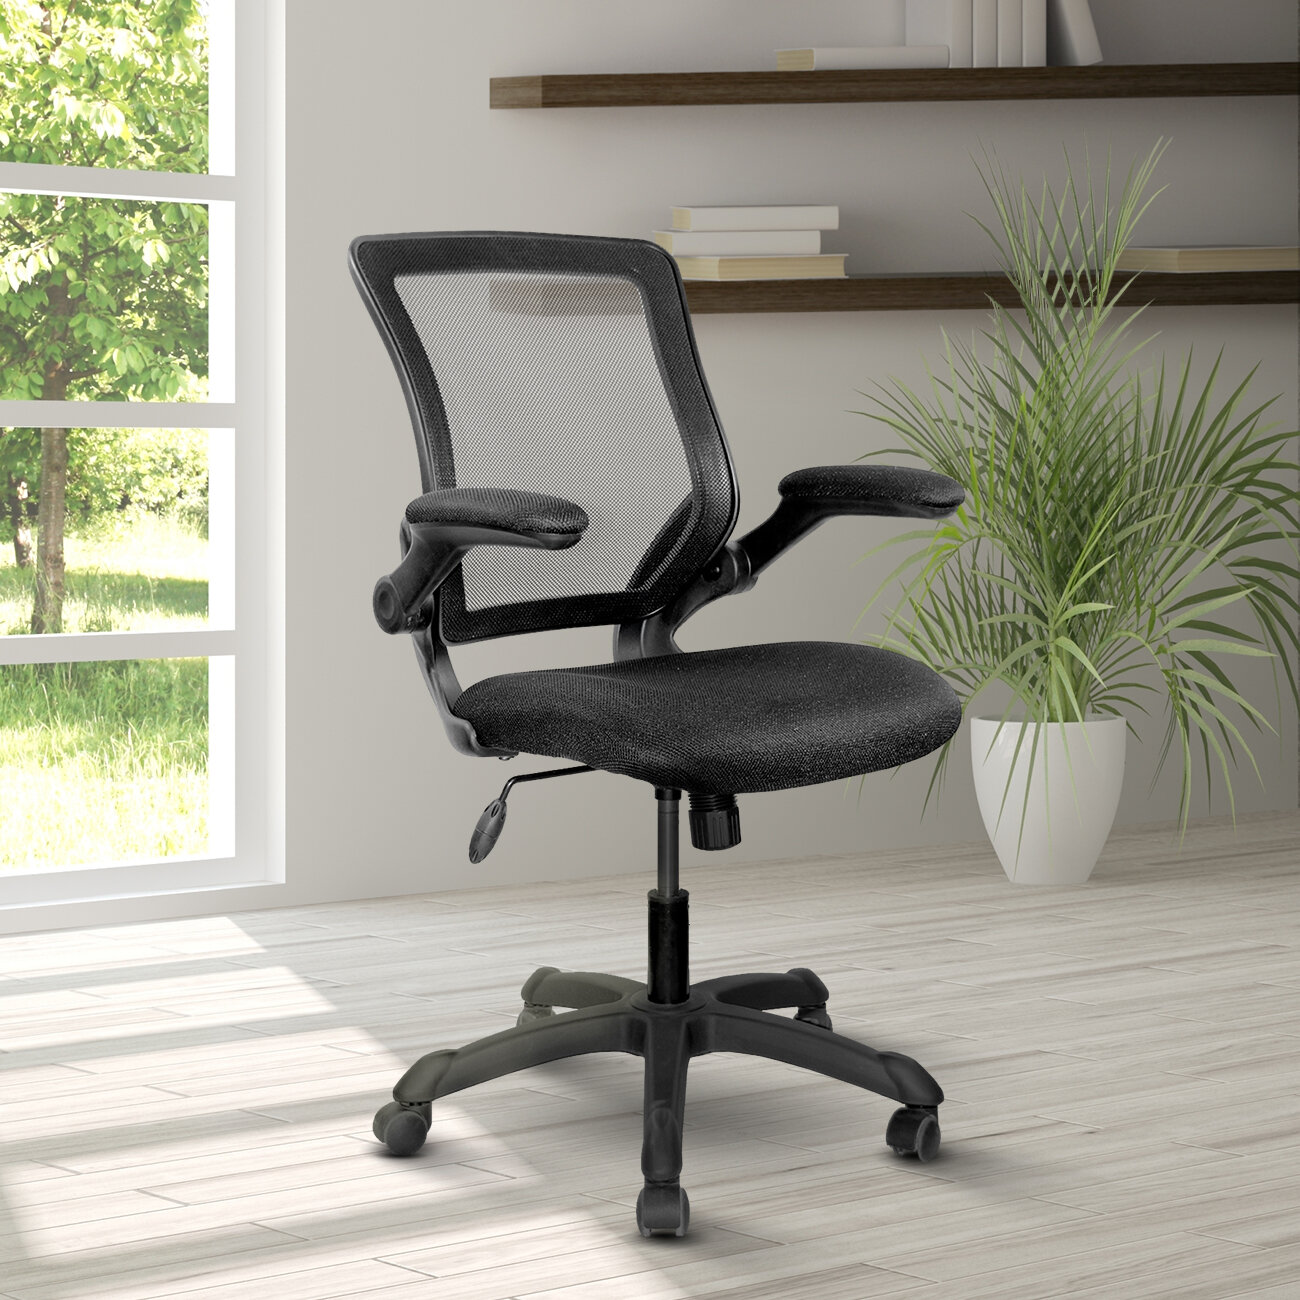 office bu dania furniture chair barrier products desk chairs